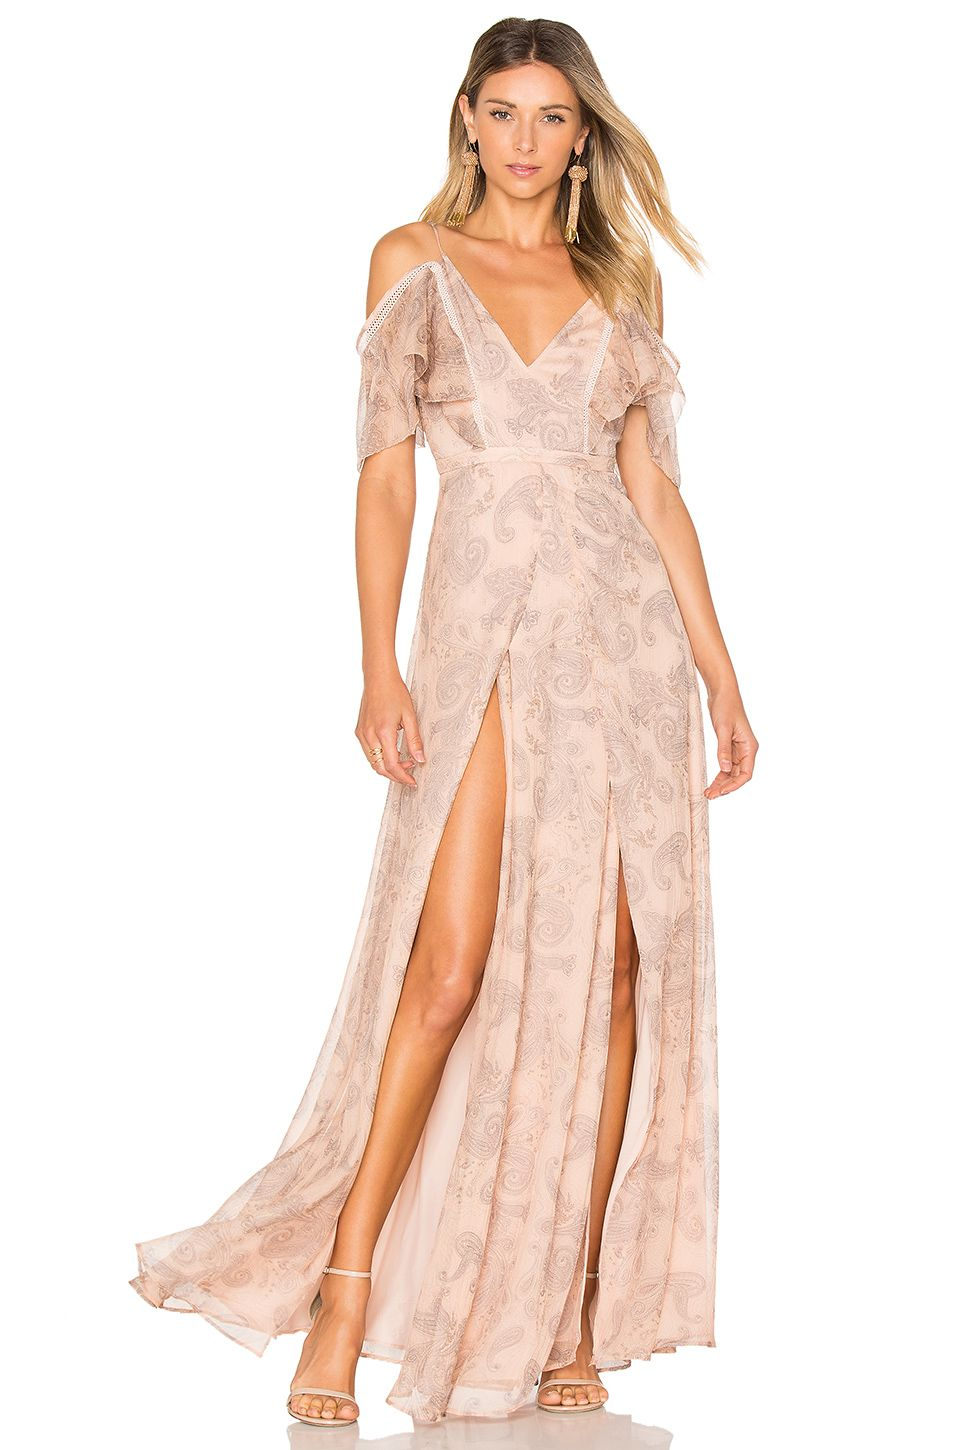 Dream dress for wedding quest in dominican rep size sm the dream dress for wedding quest in dominican rep size sm the jetset ombrellifo Gallery